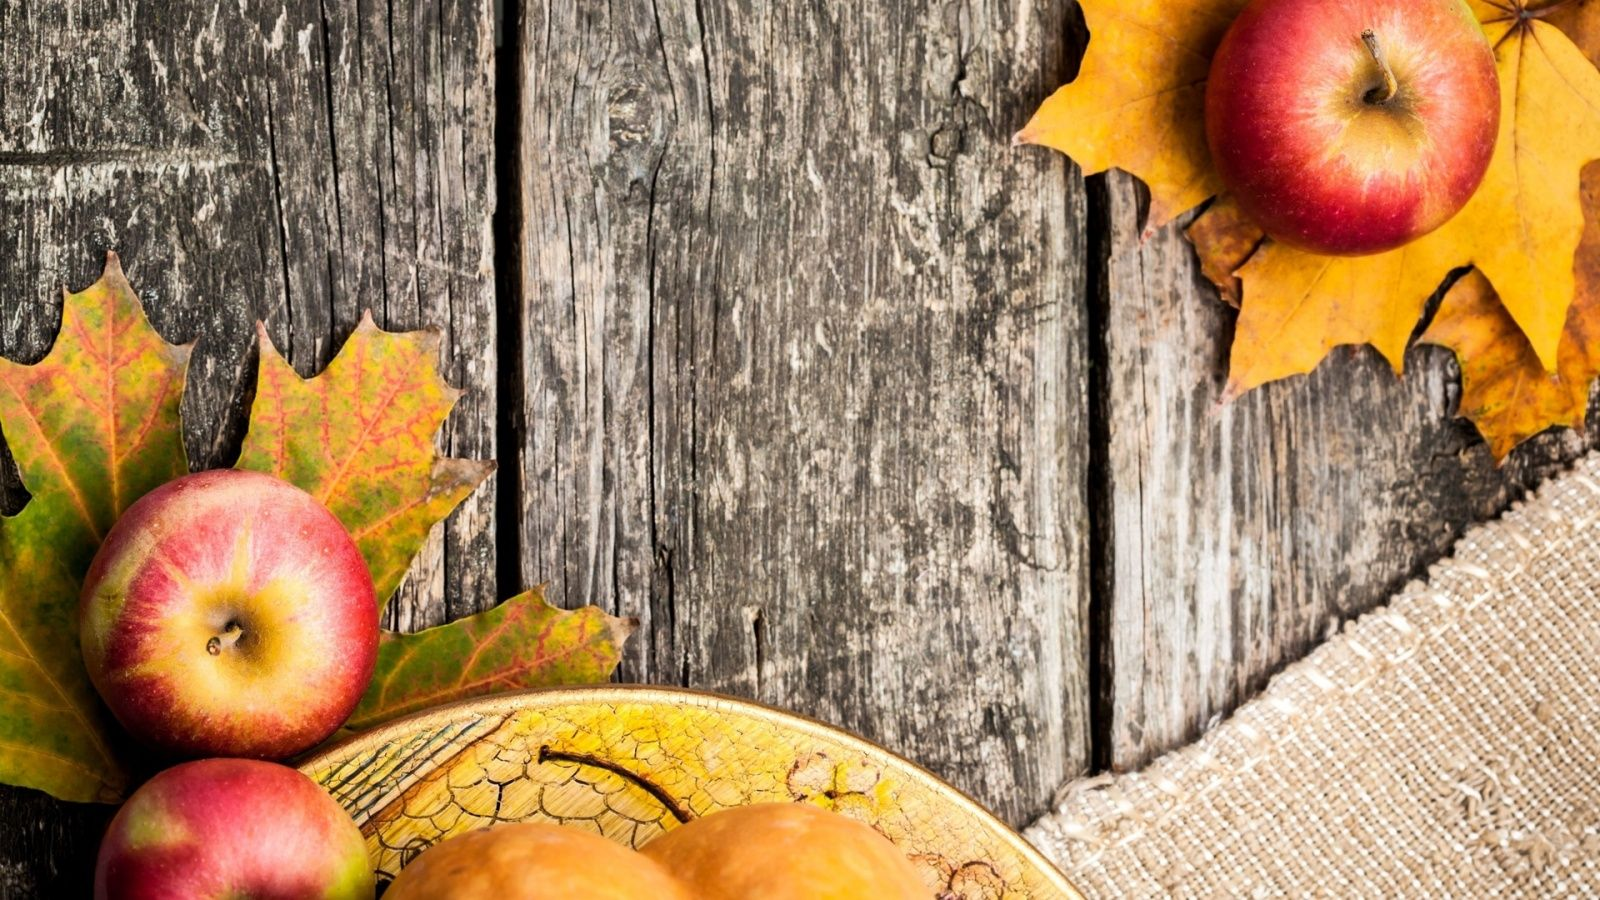 Fall Harvest Wallpaper High Resolution Fall Wallpaper Desktop Wallpaper Fall Nature Wallpaper